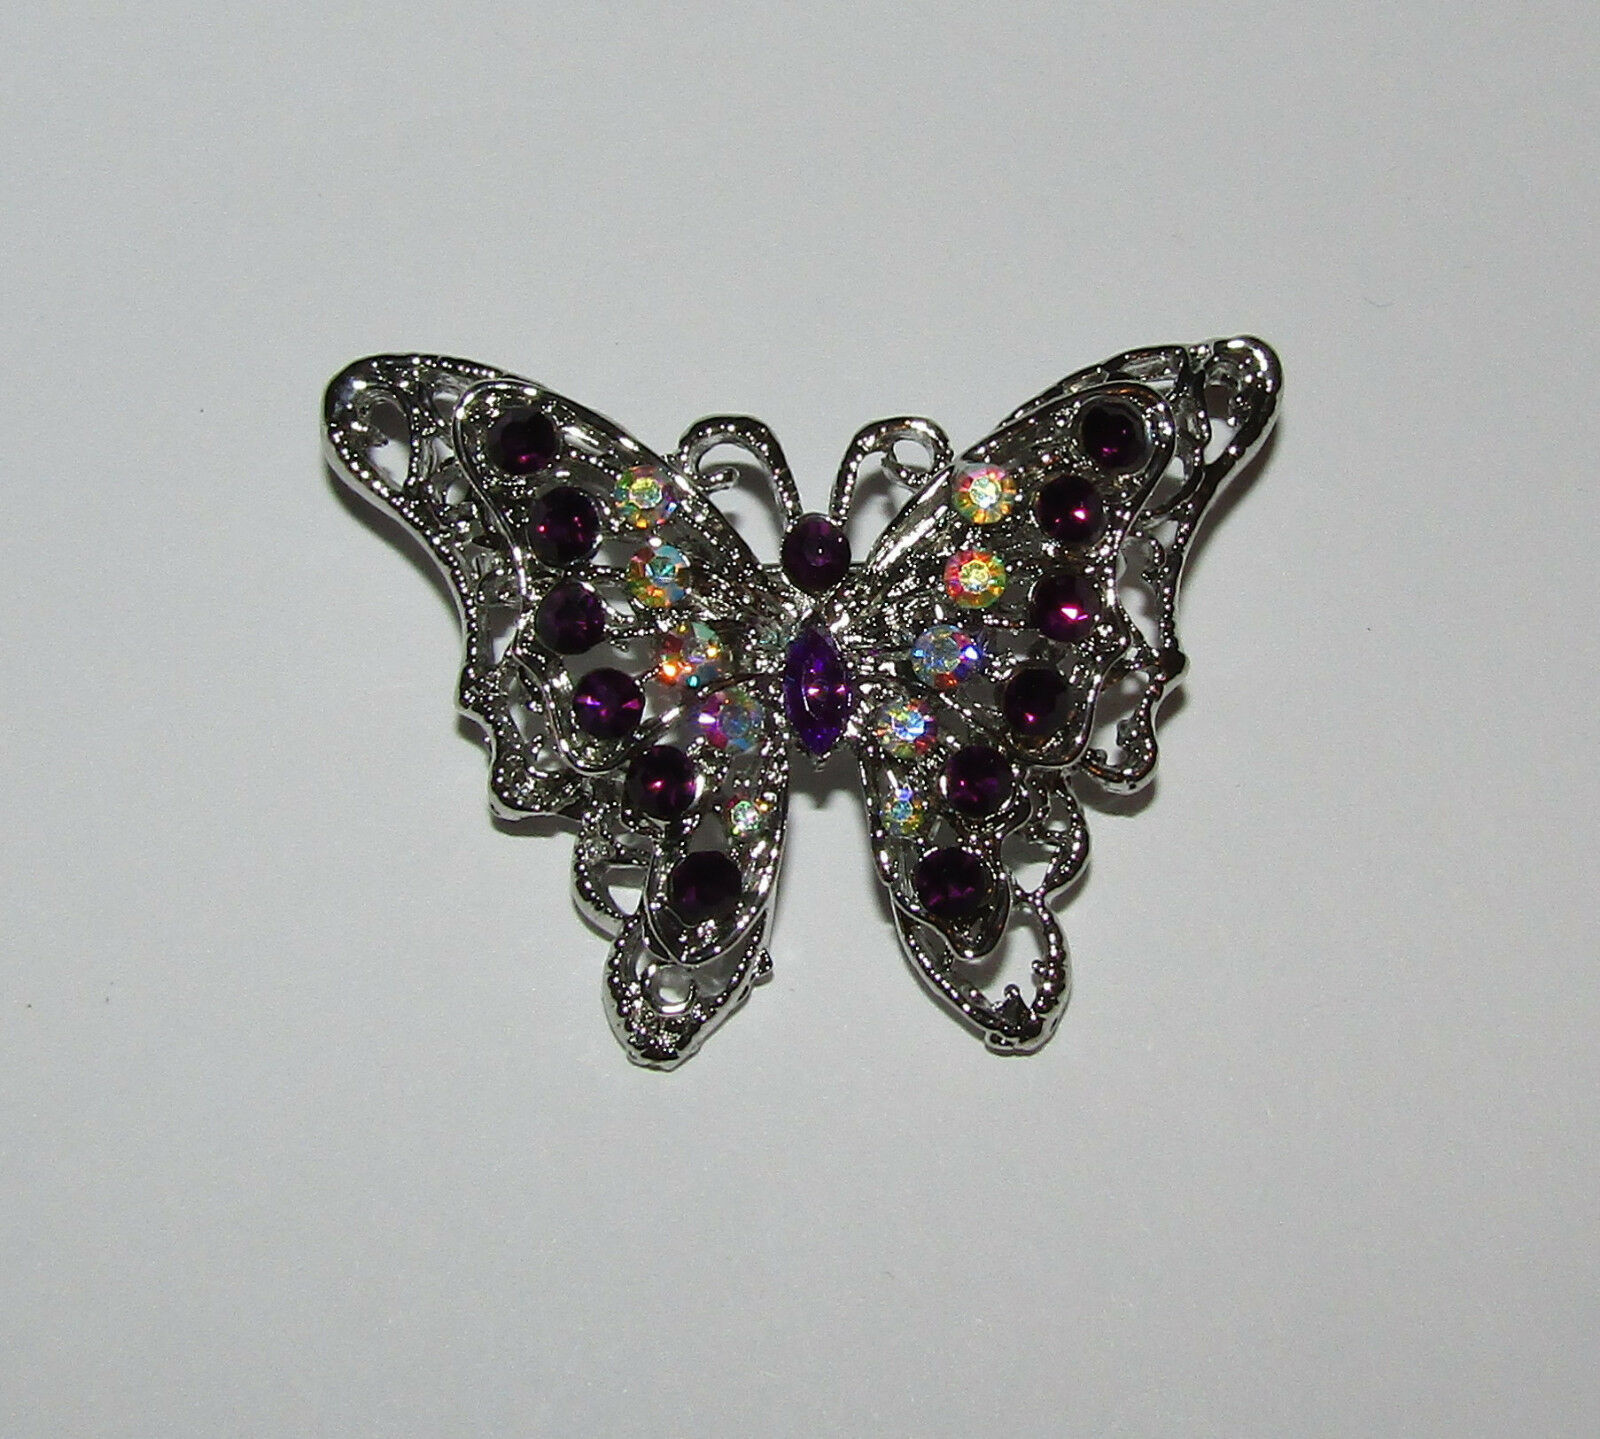 Primary image for Butterfly Pin Silver Tone Purple and AB Accents New Butterflies Jewelry Brooch